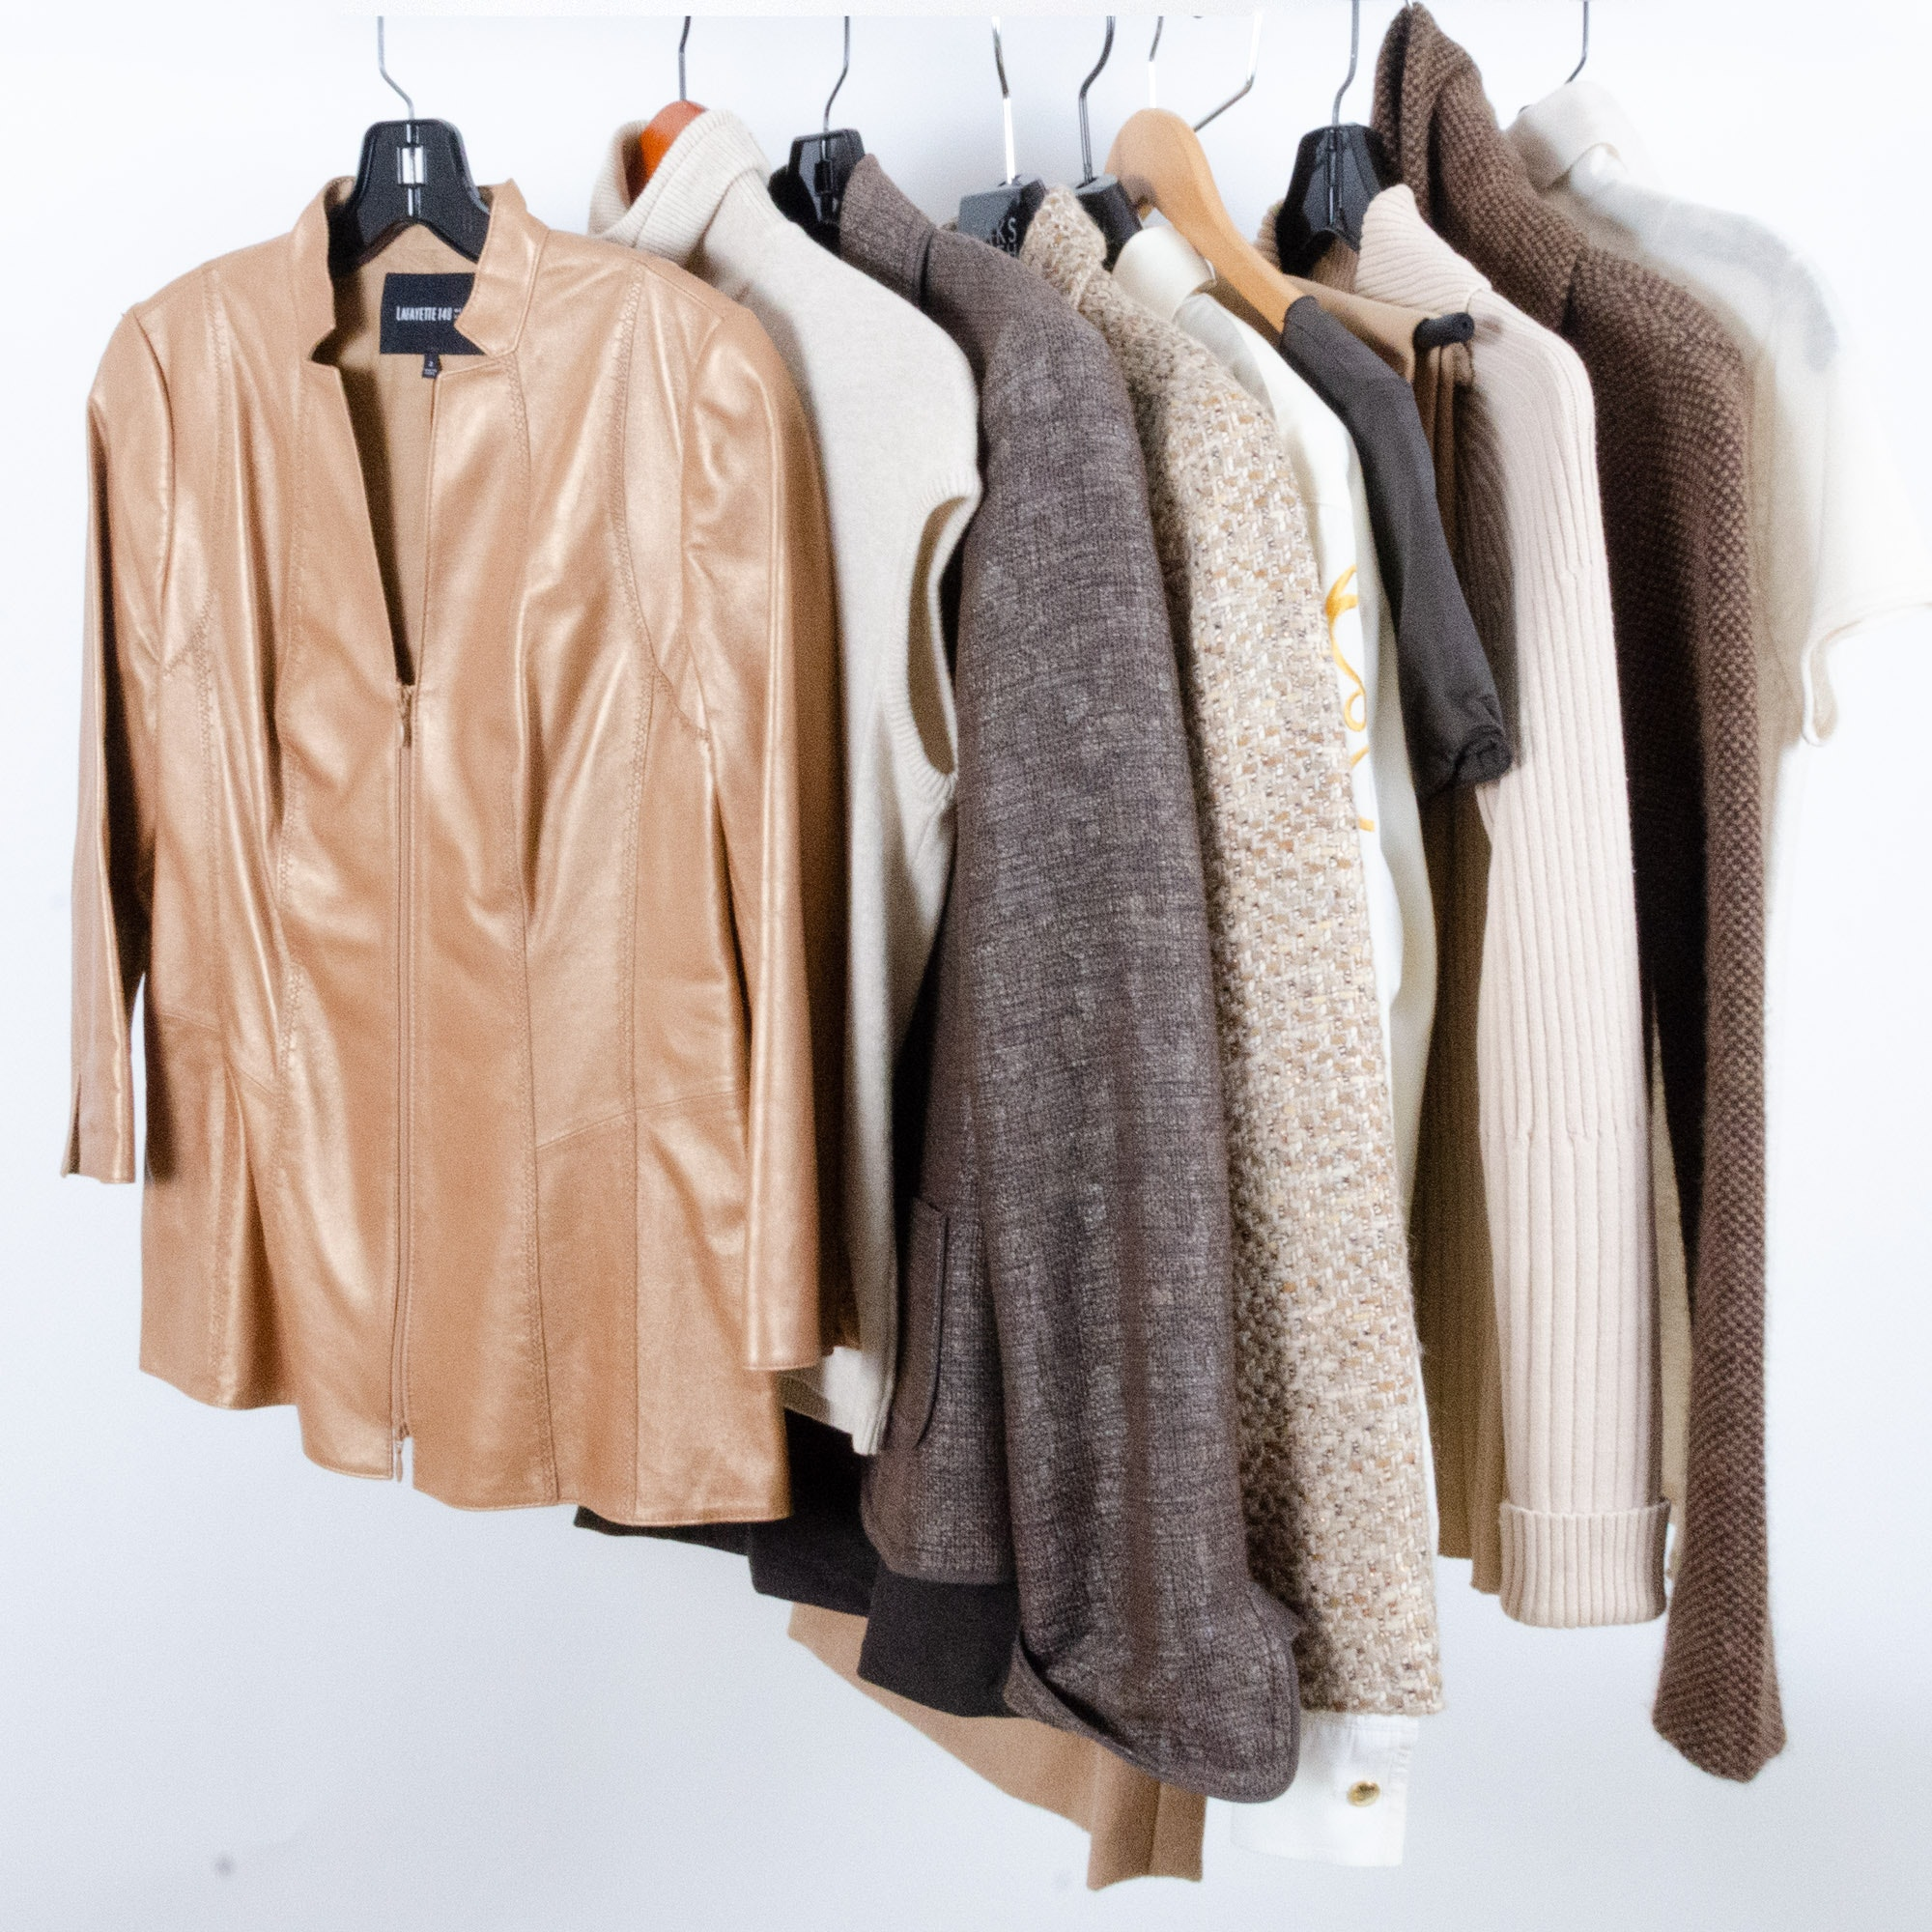 Armani, Escada, and Lafayette 148 Jackets, Skirts and Sweaters with Leather